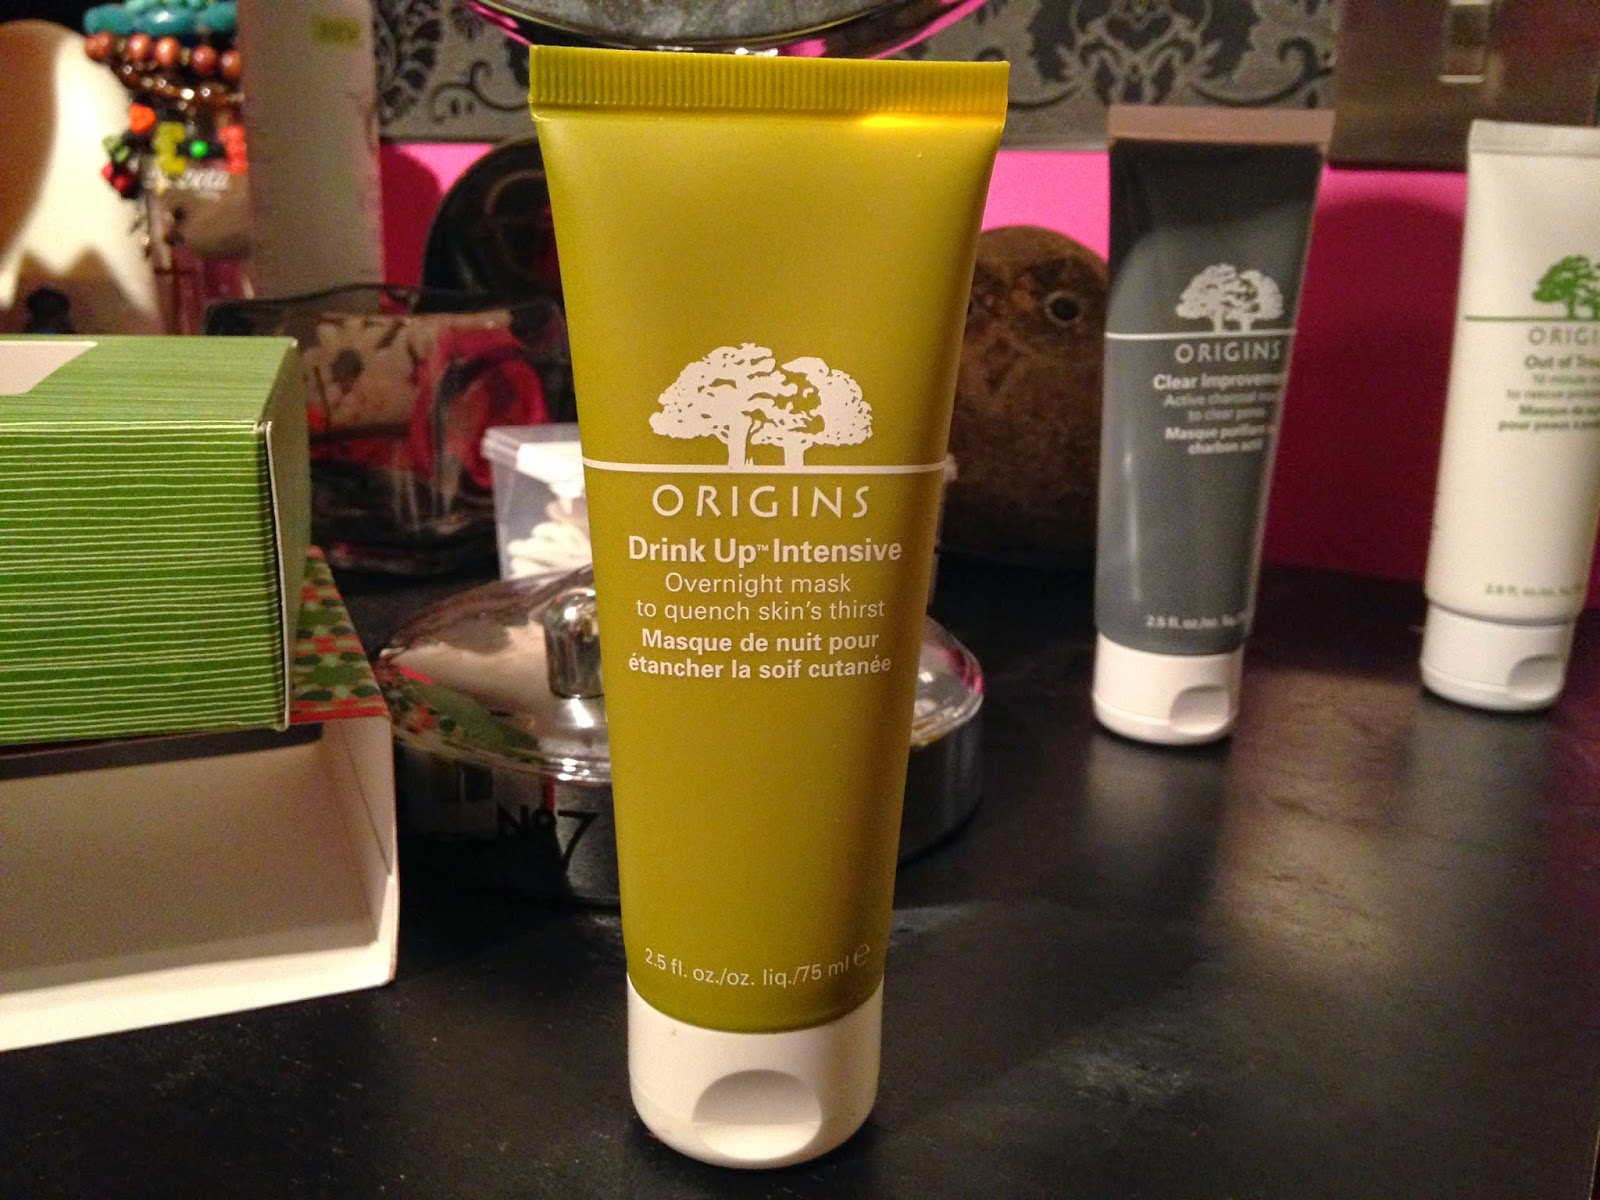 Origins Drink Up Intensive Face Mask